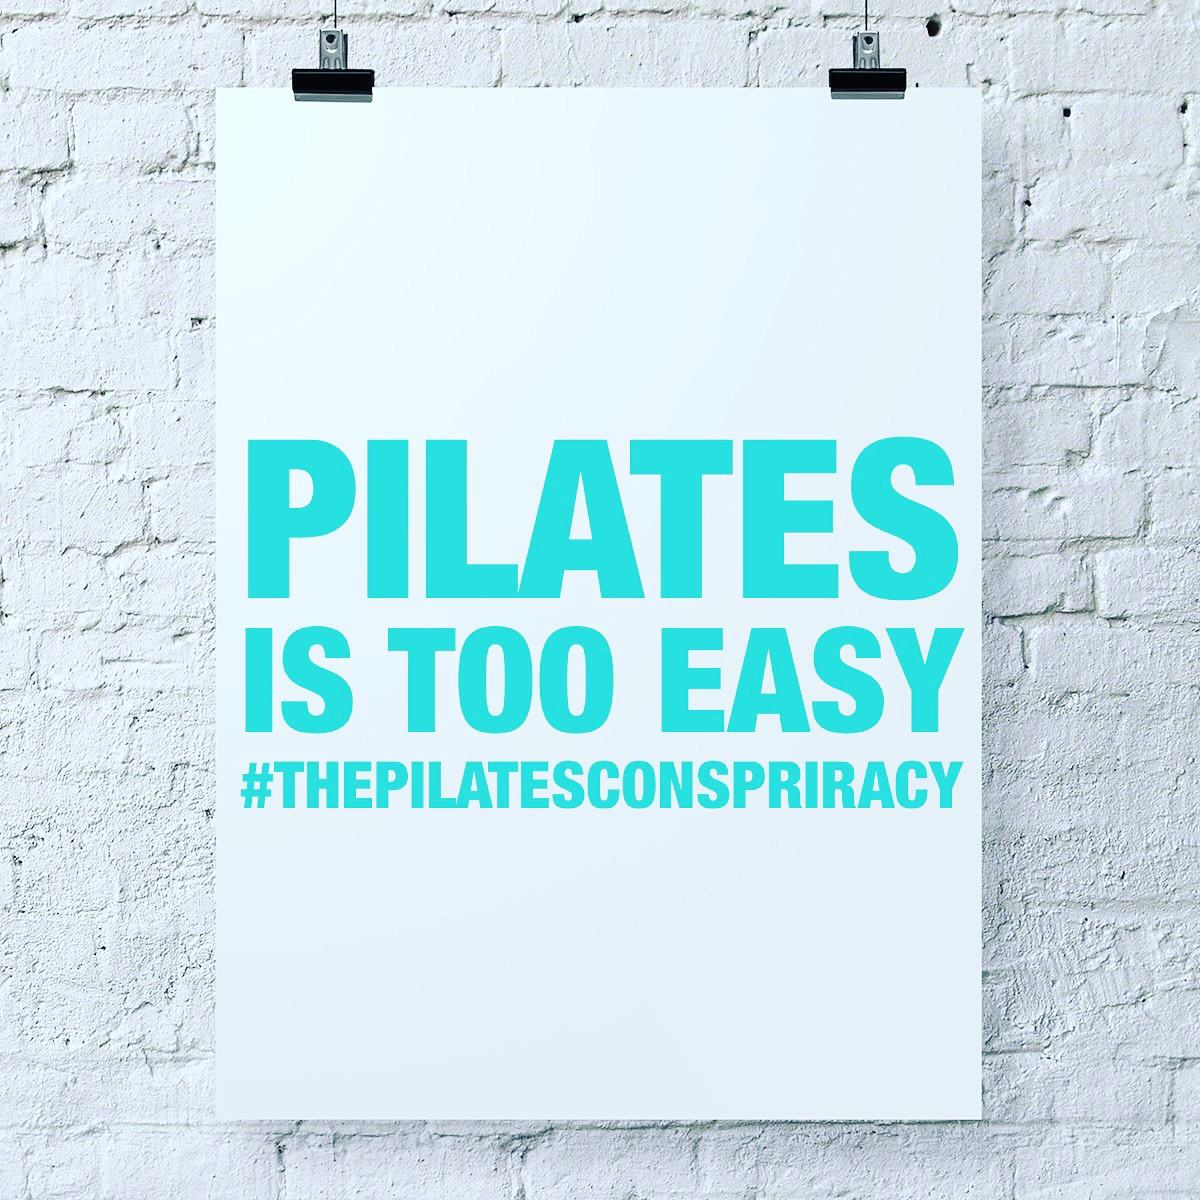 Pilates is too easy